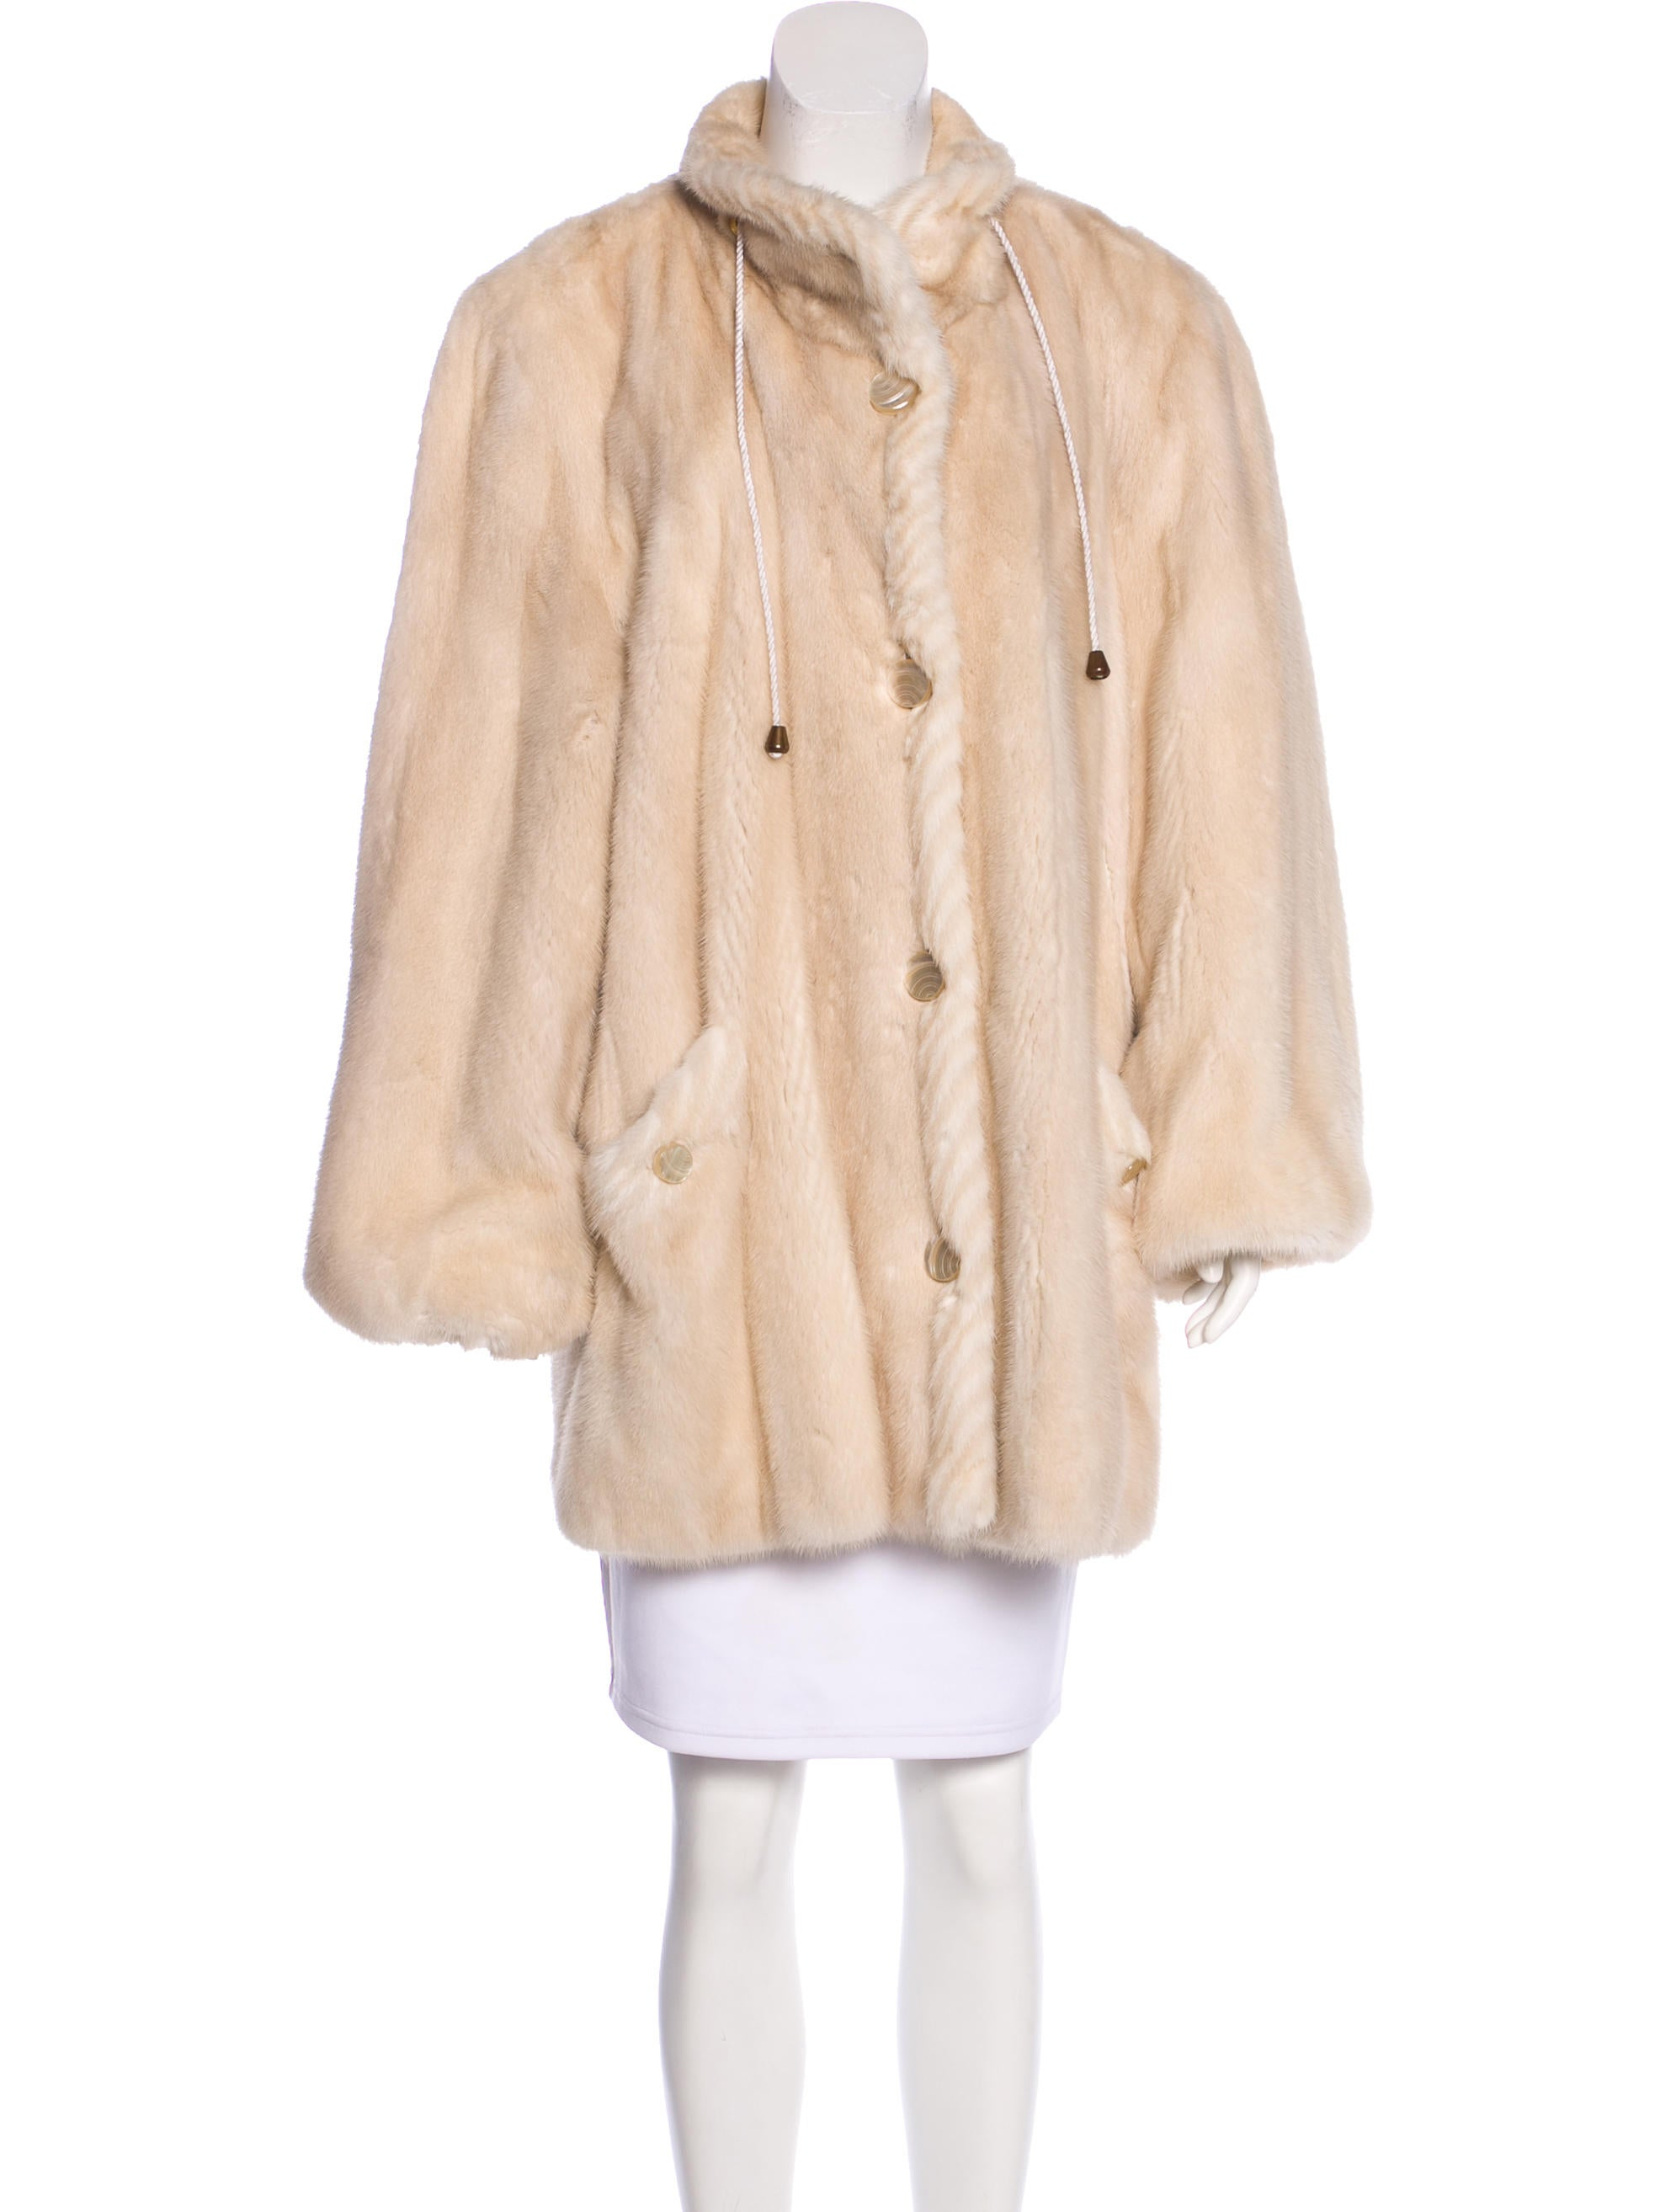 b22765f19 Short Mink Fur Coat - Clothing - FUR23135